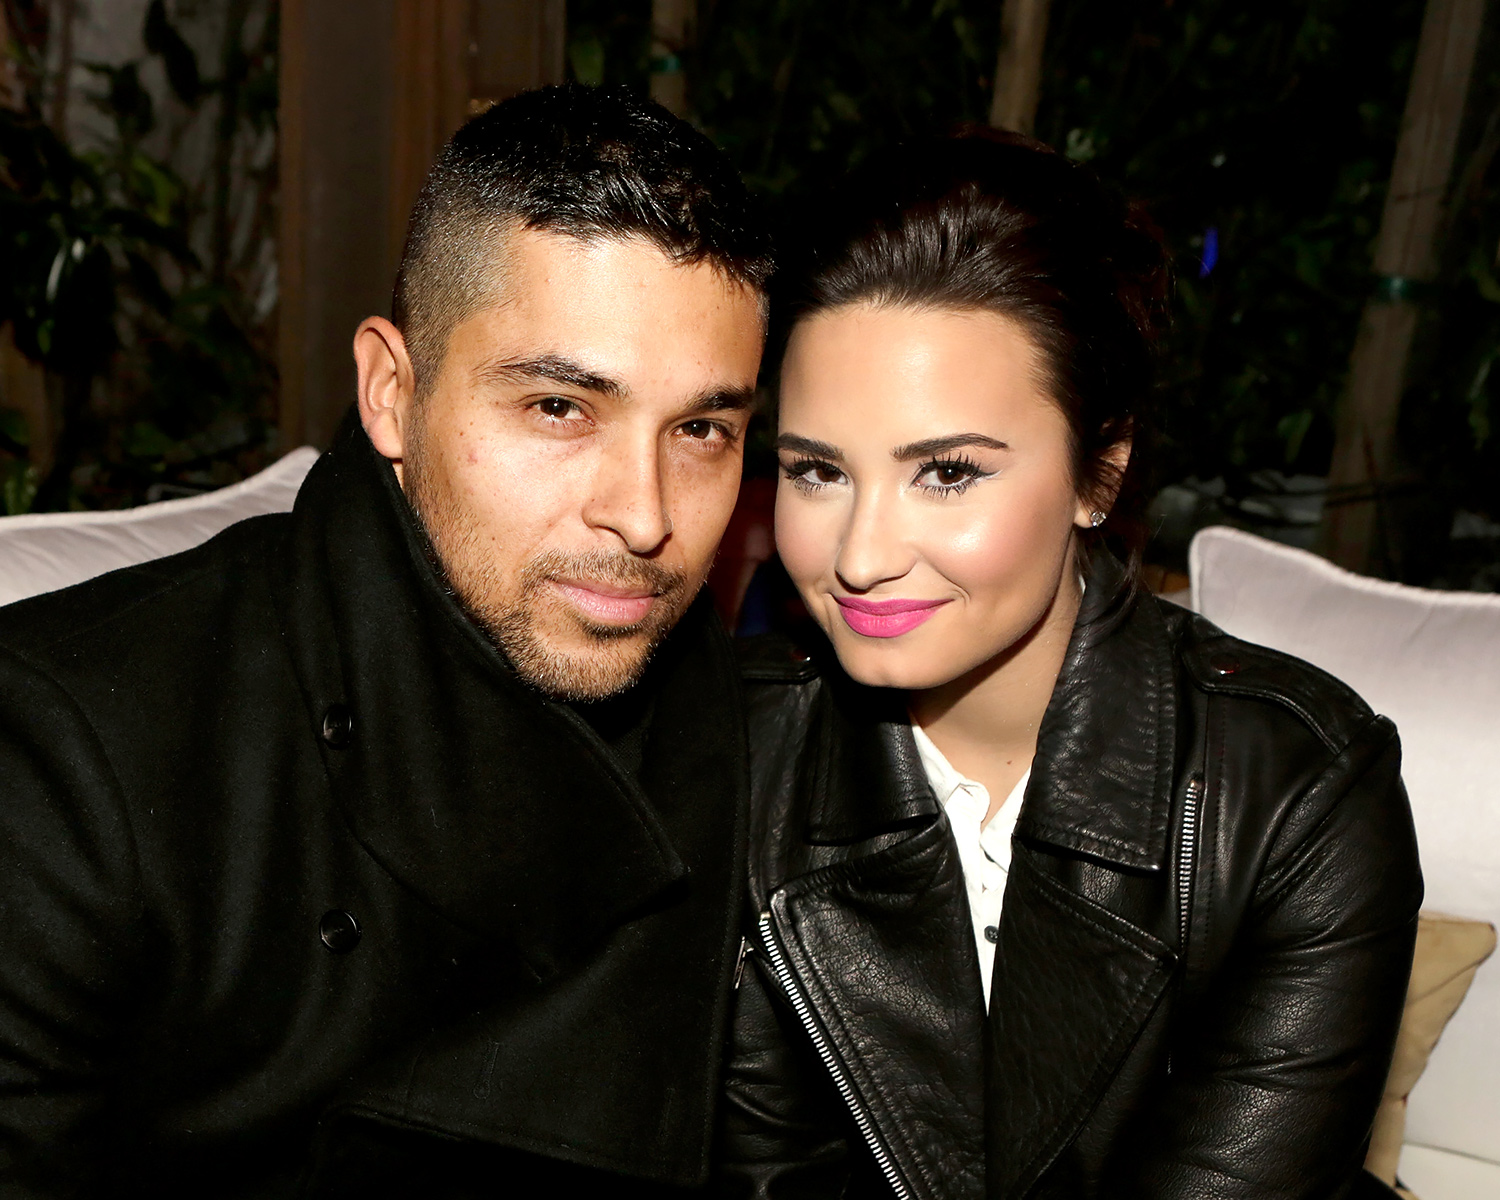 Wilmer Valderrama and his ex-girlfriend, Demi Lovato